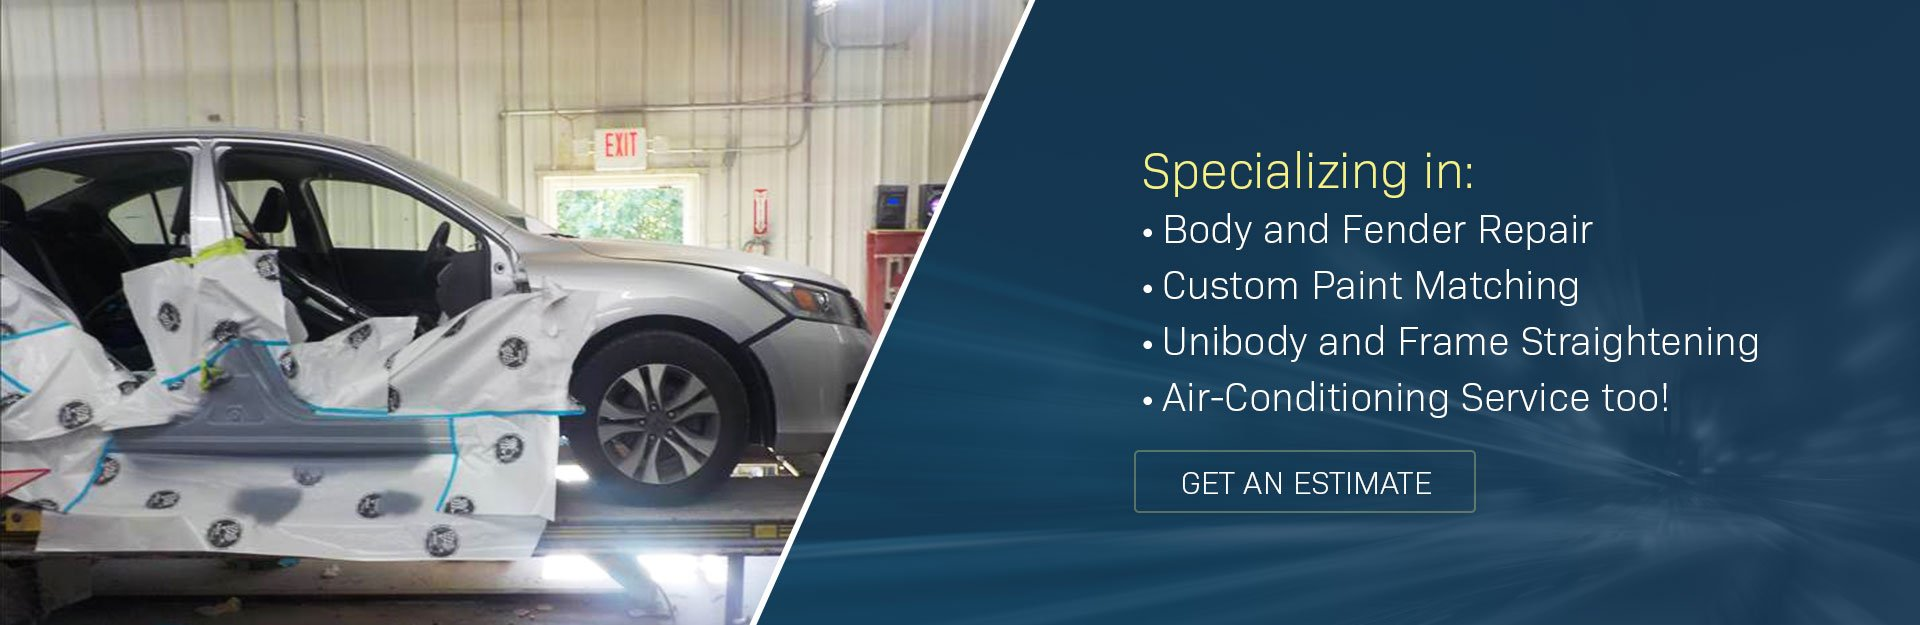 Providing the Best in Auto Collision Repair